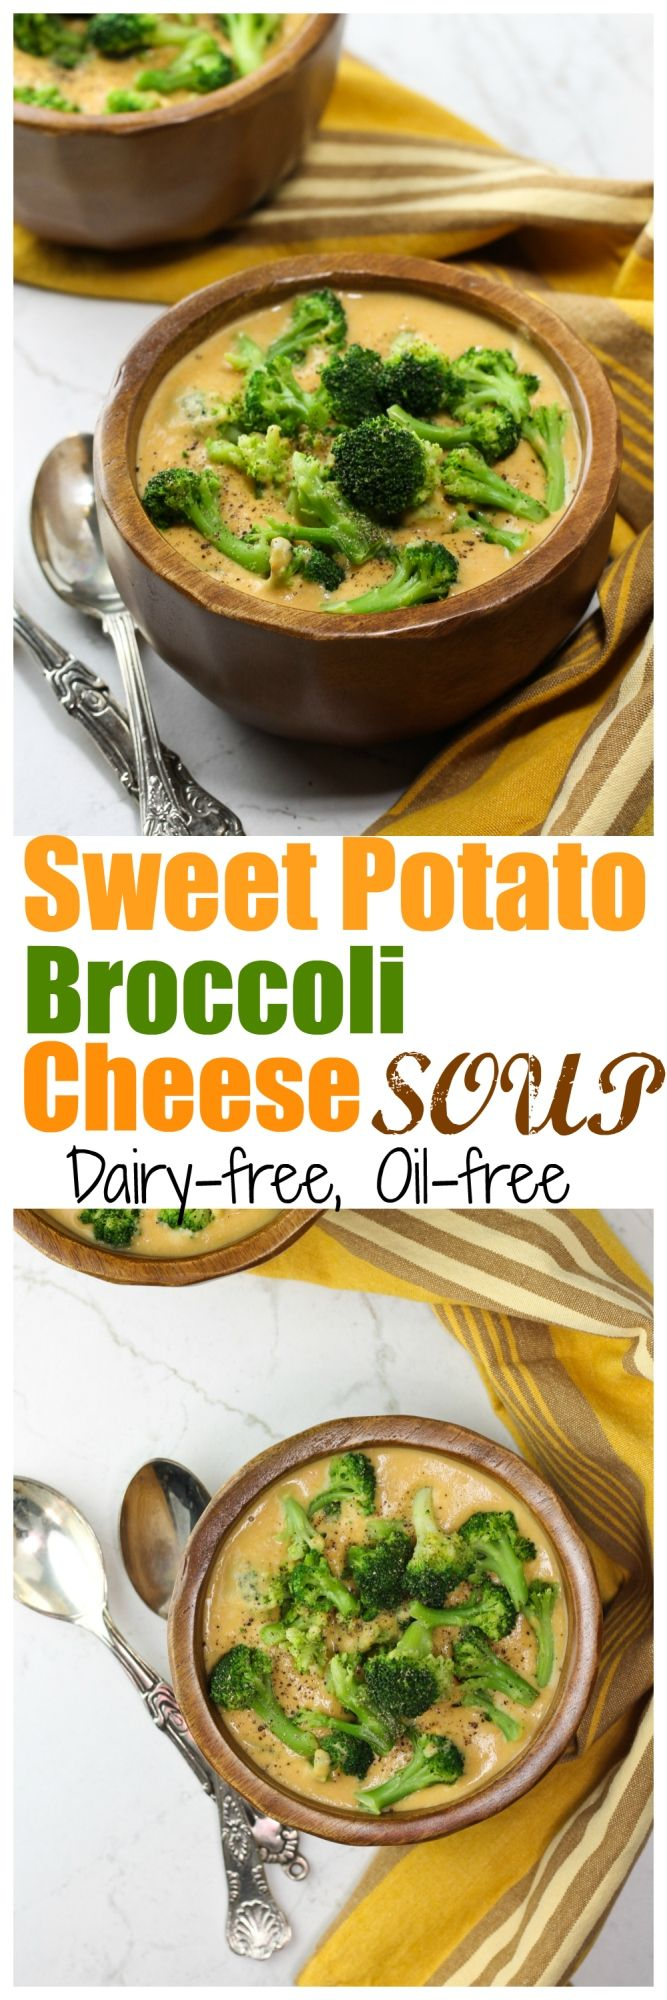 Broccoli Cheese Soup with a twist of sweet potatoes and an amazing unexpected ingredient! This has a wonderful sweet potato-ish and cheesy-ish flavor. So creamy and delicious, yet so healthy. Dairy-free and oil-free!